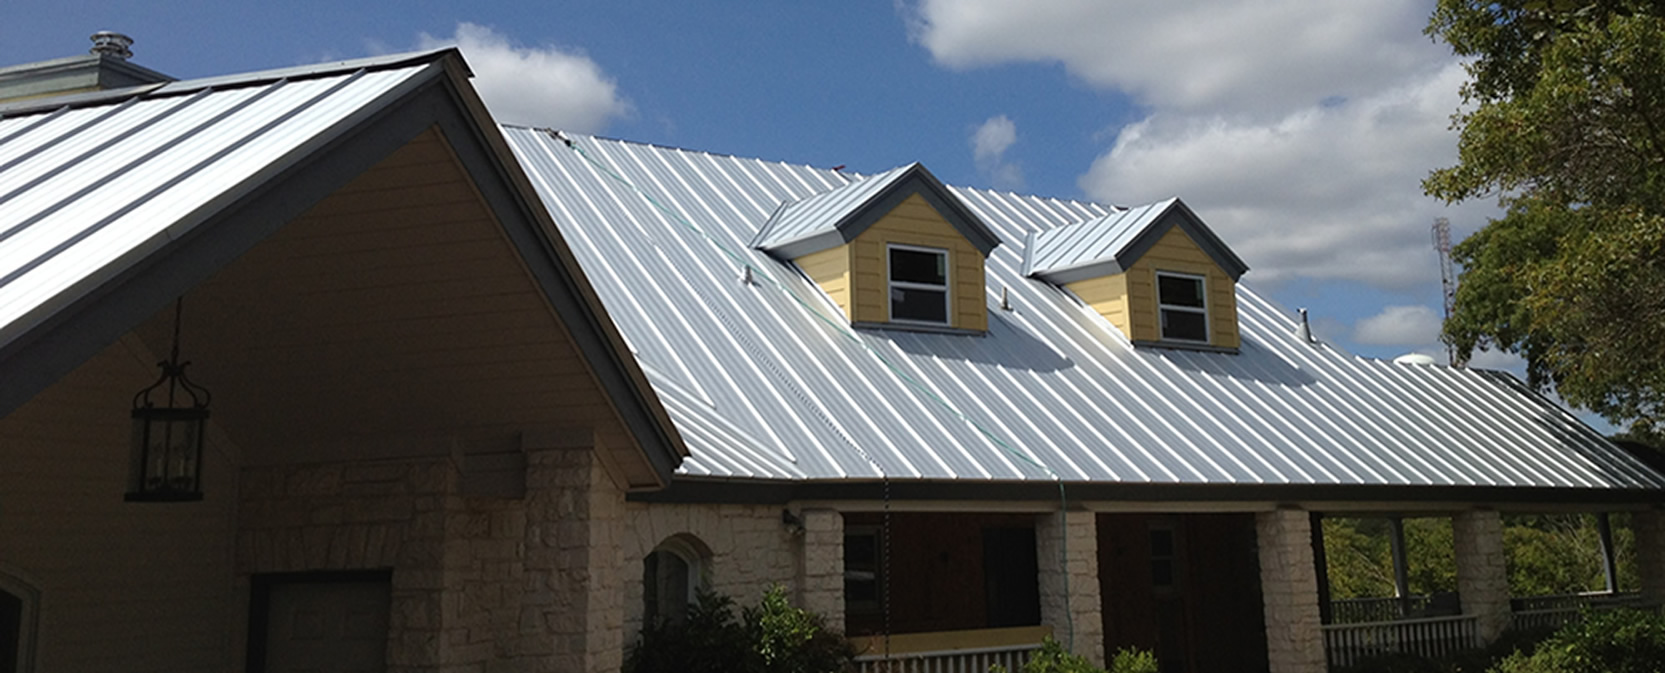 Roof Shingles Colors Most Popular